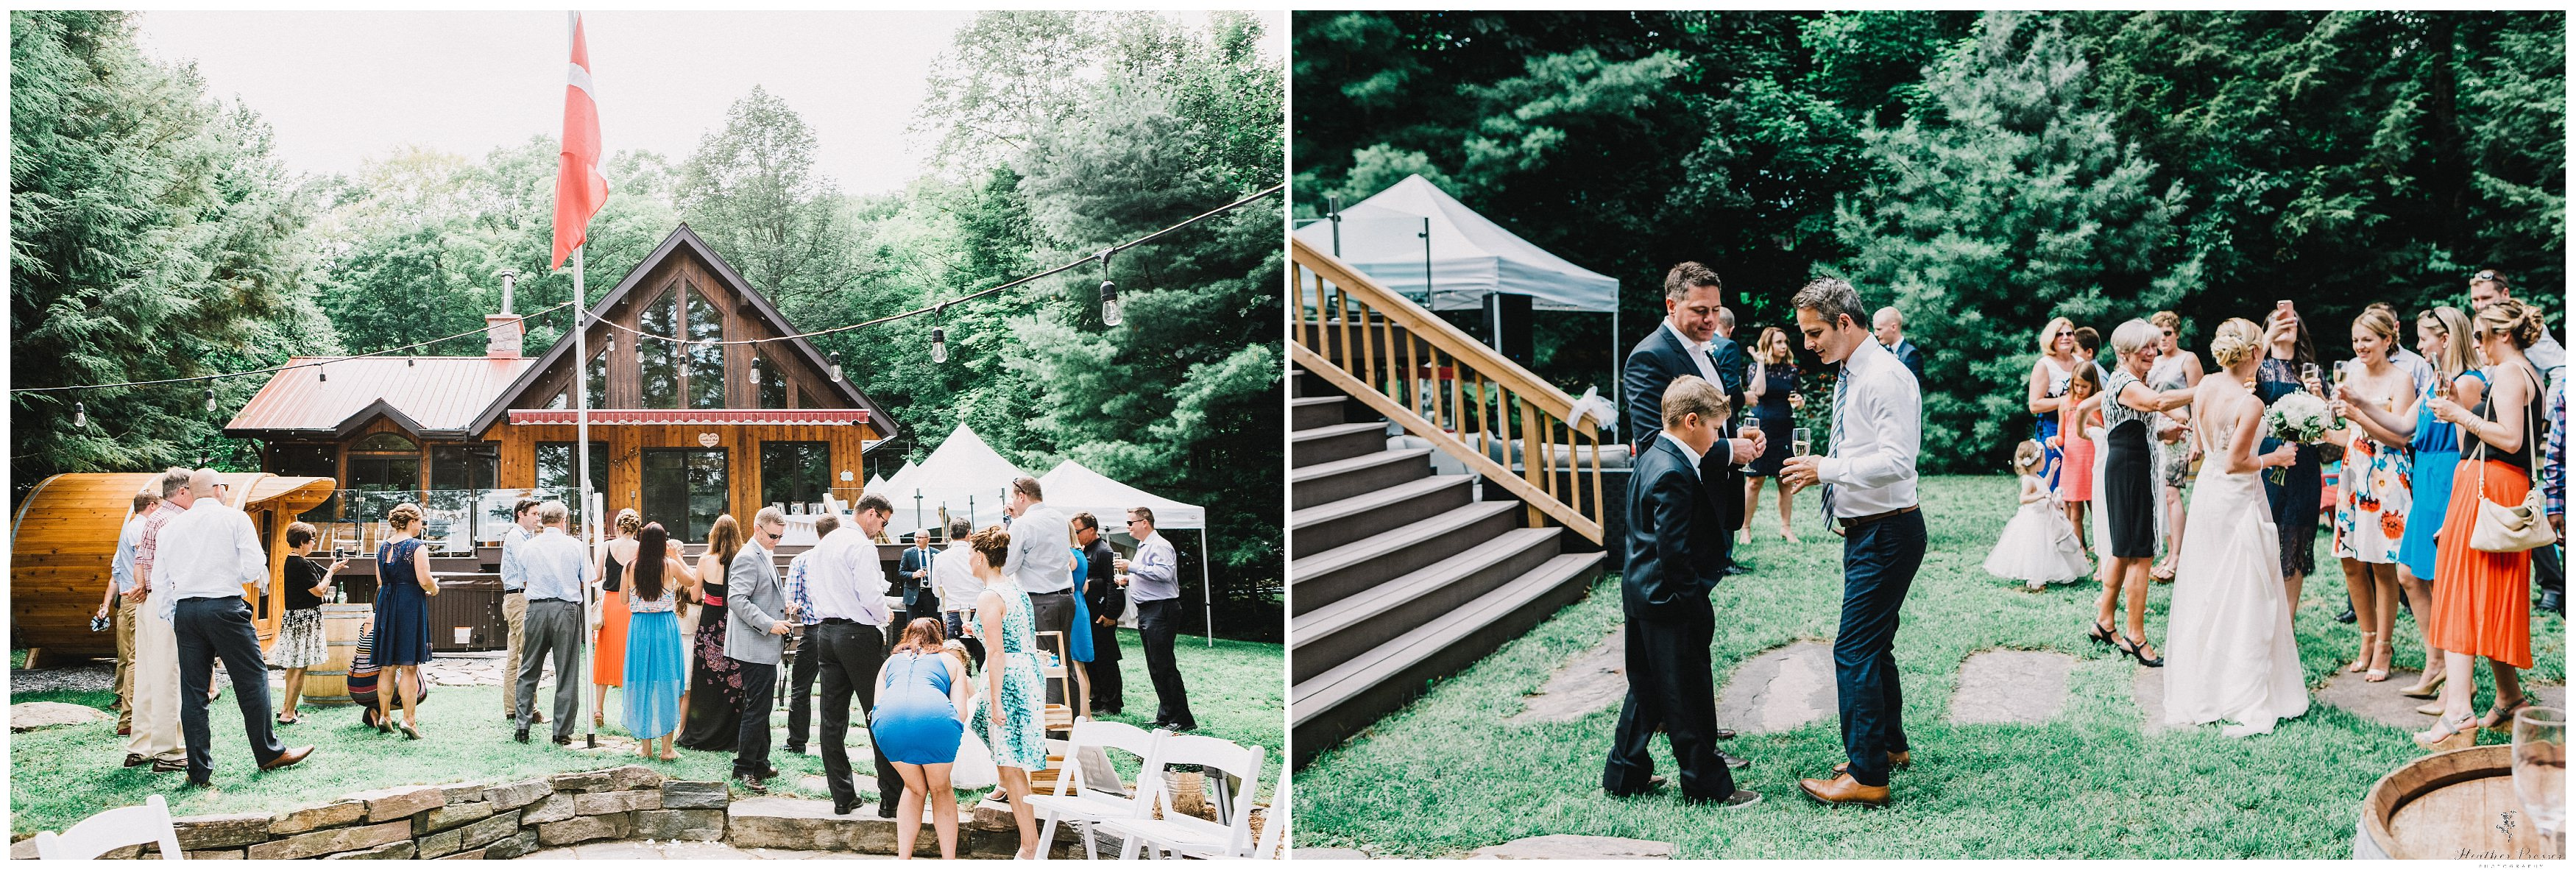 Haliburton Cottage Wedding_1295-1.jpg